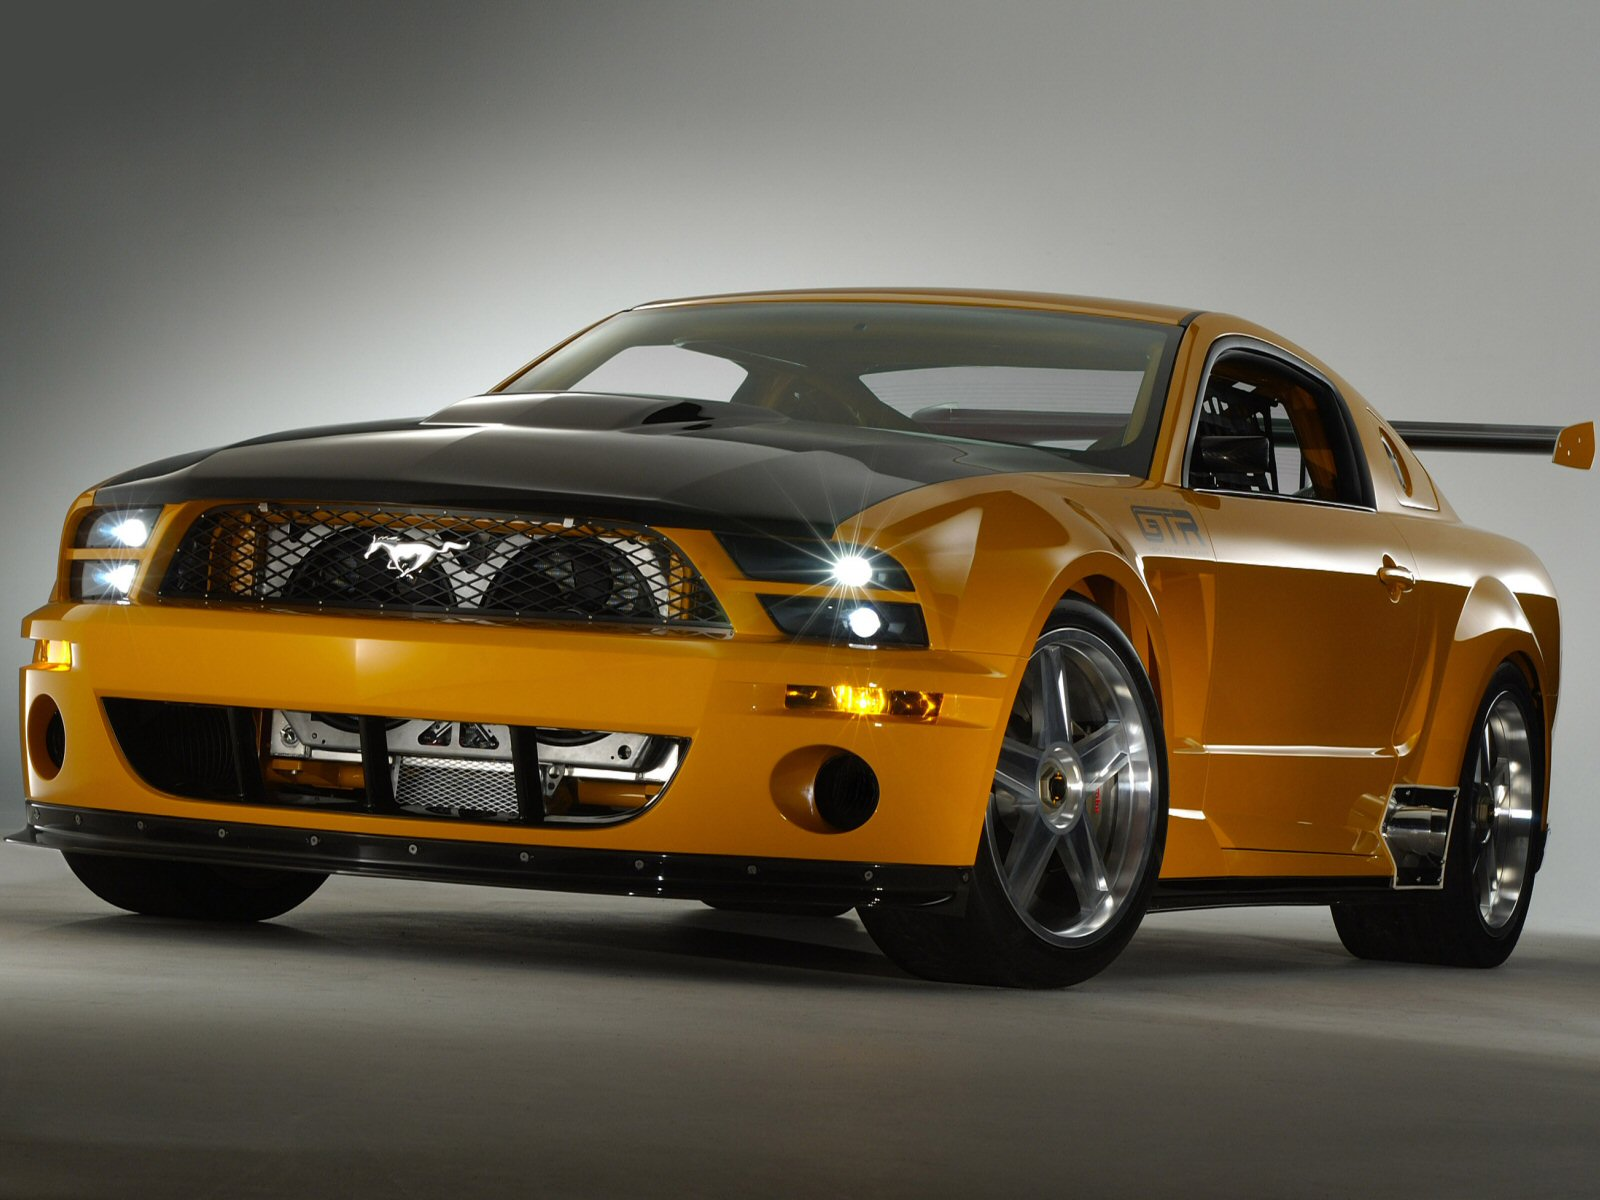 Ford Mustang GT photo 7006